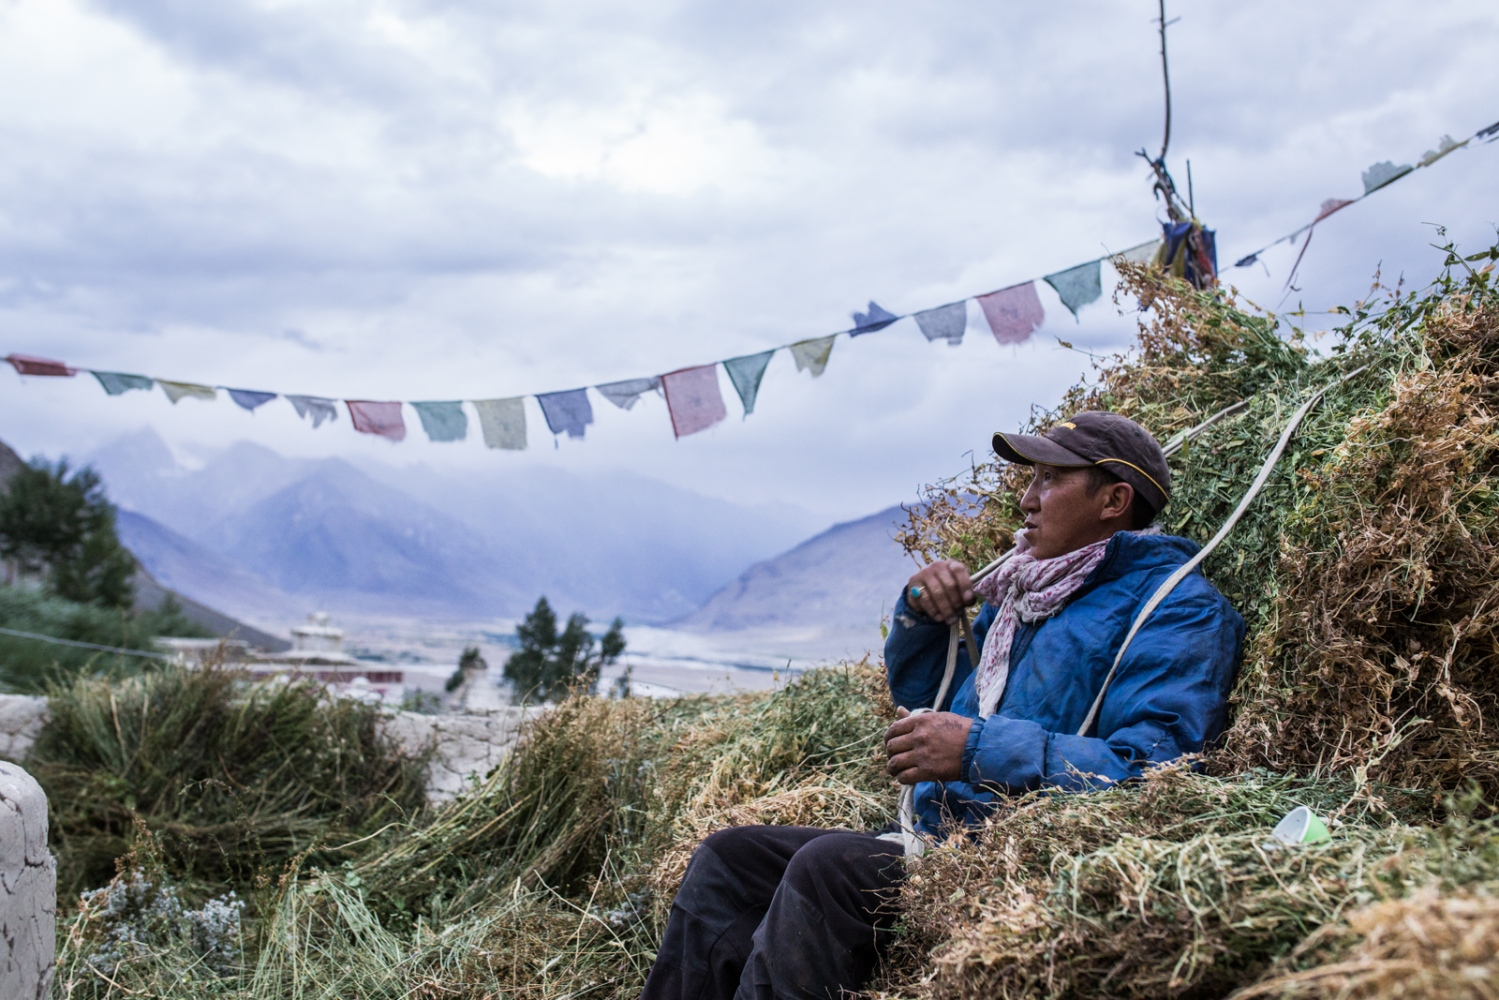 Tashi Stobdan rests on the roof of his home after carrying load after load of livestock fodder for storage.